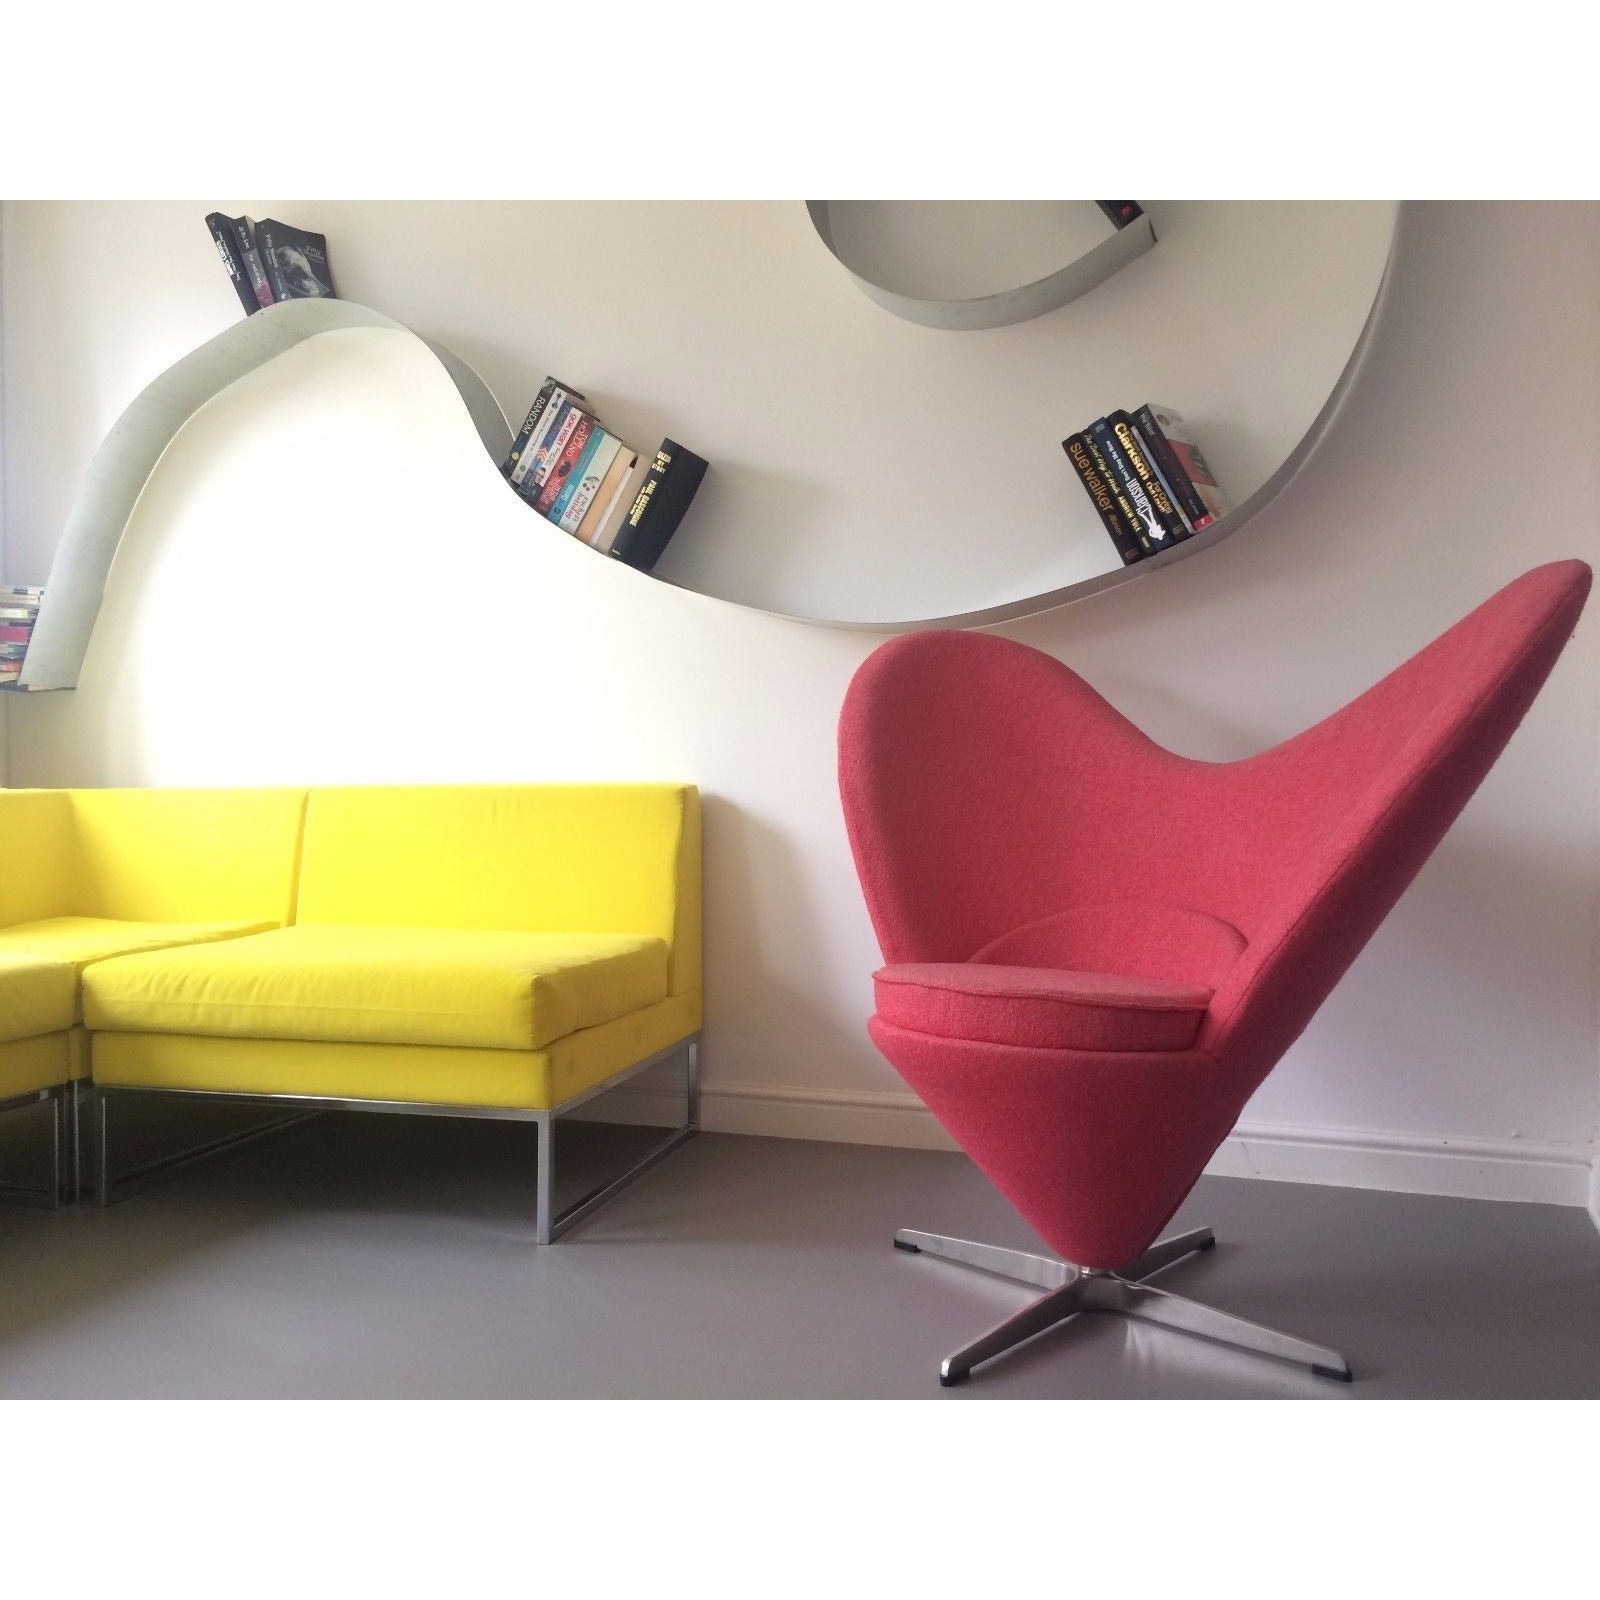 Retro funky second hand household furniture buy and for 2nd hand chaise longue